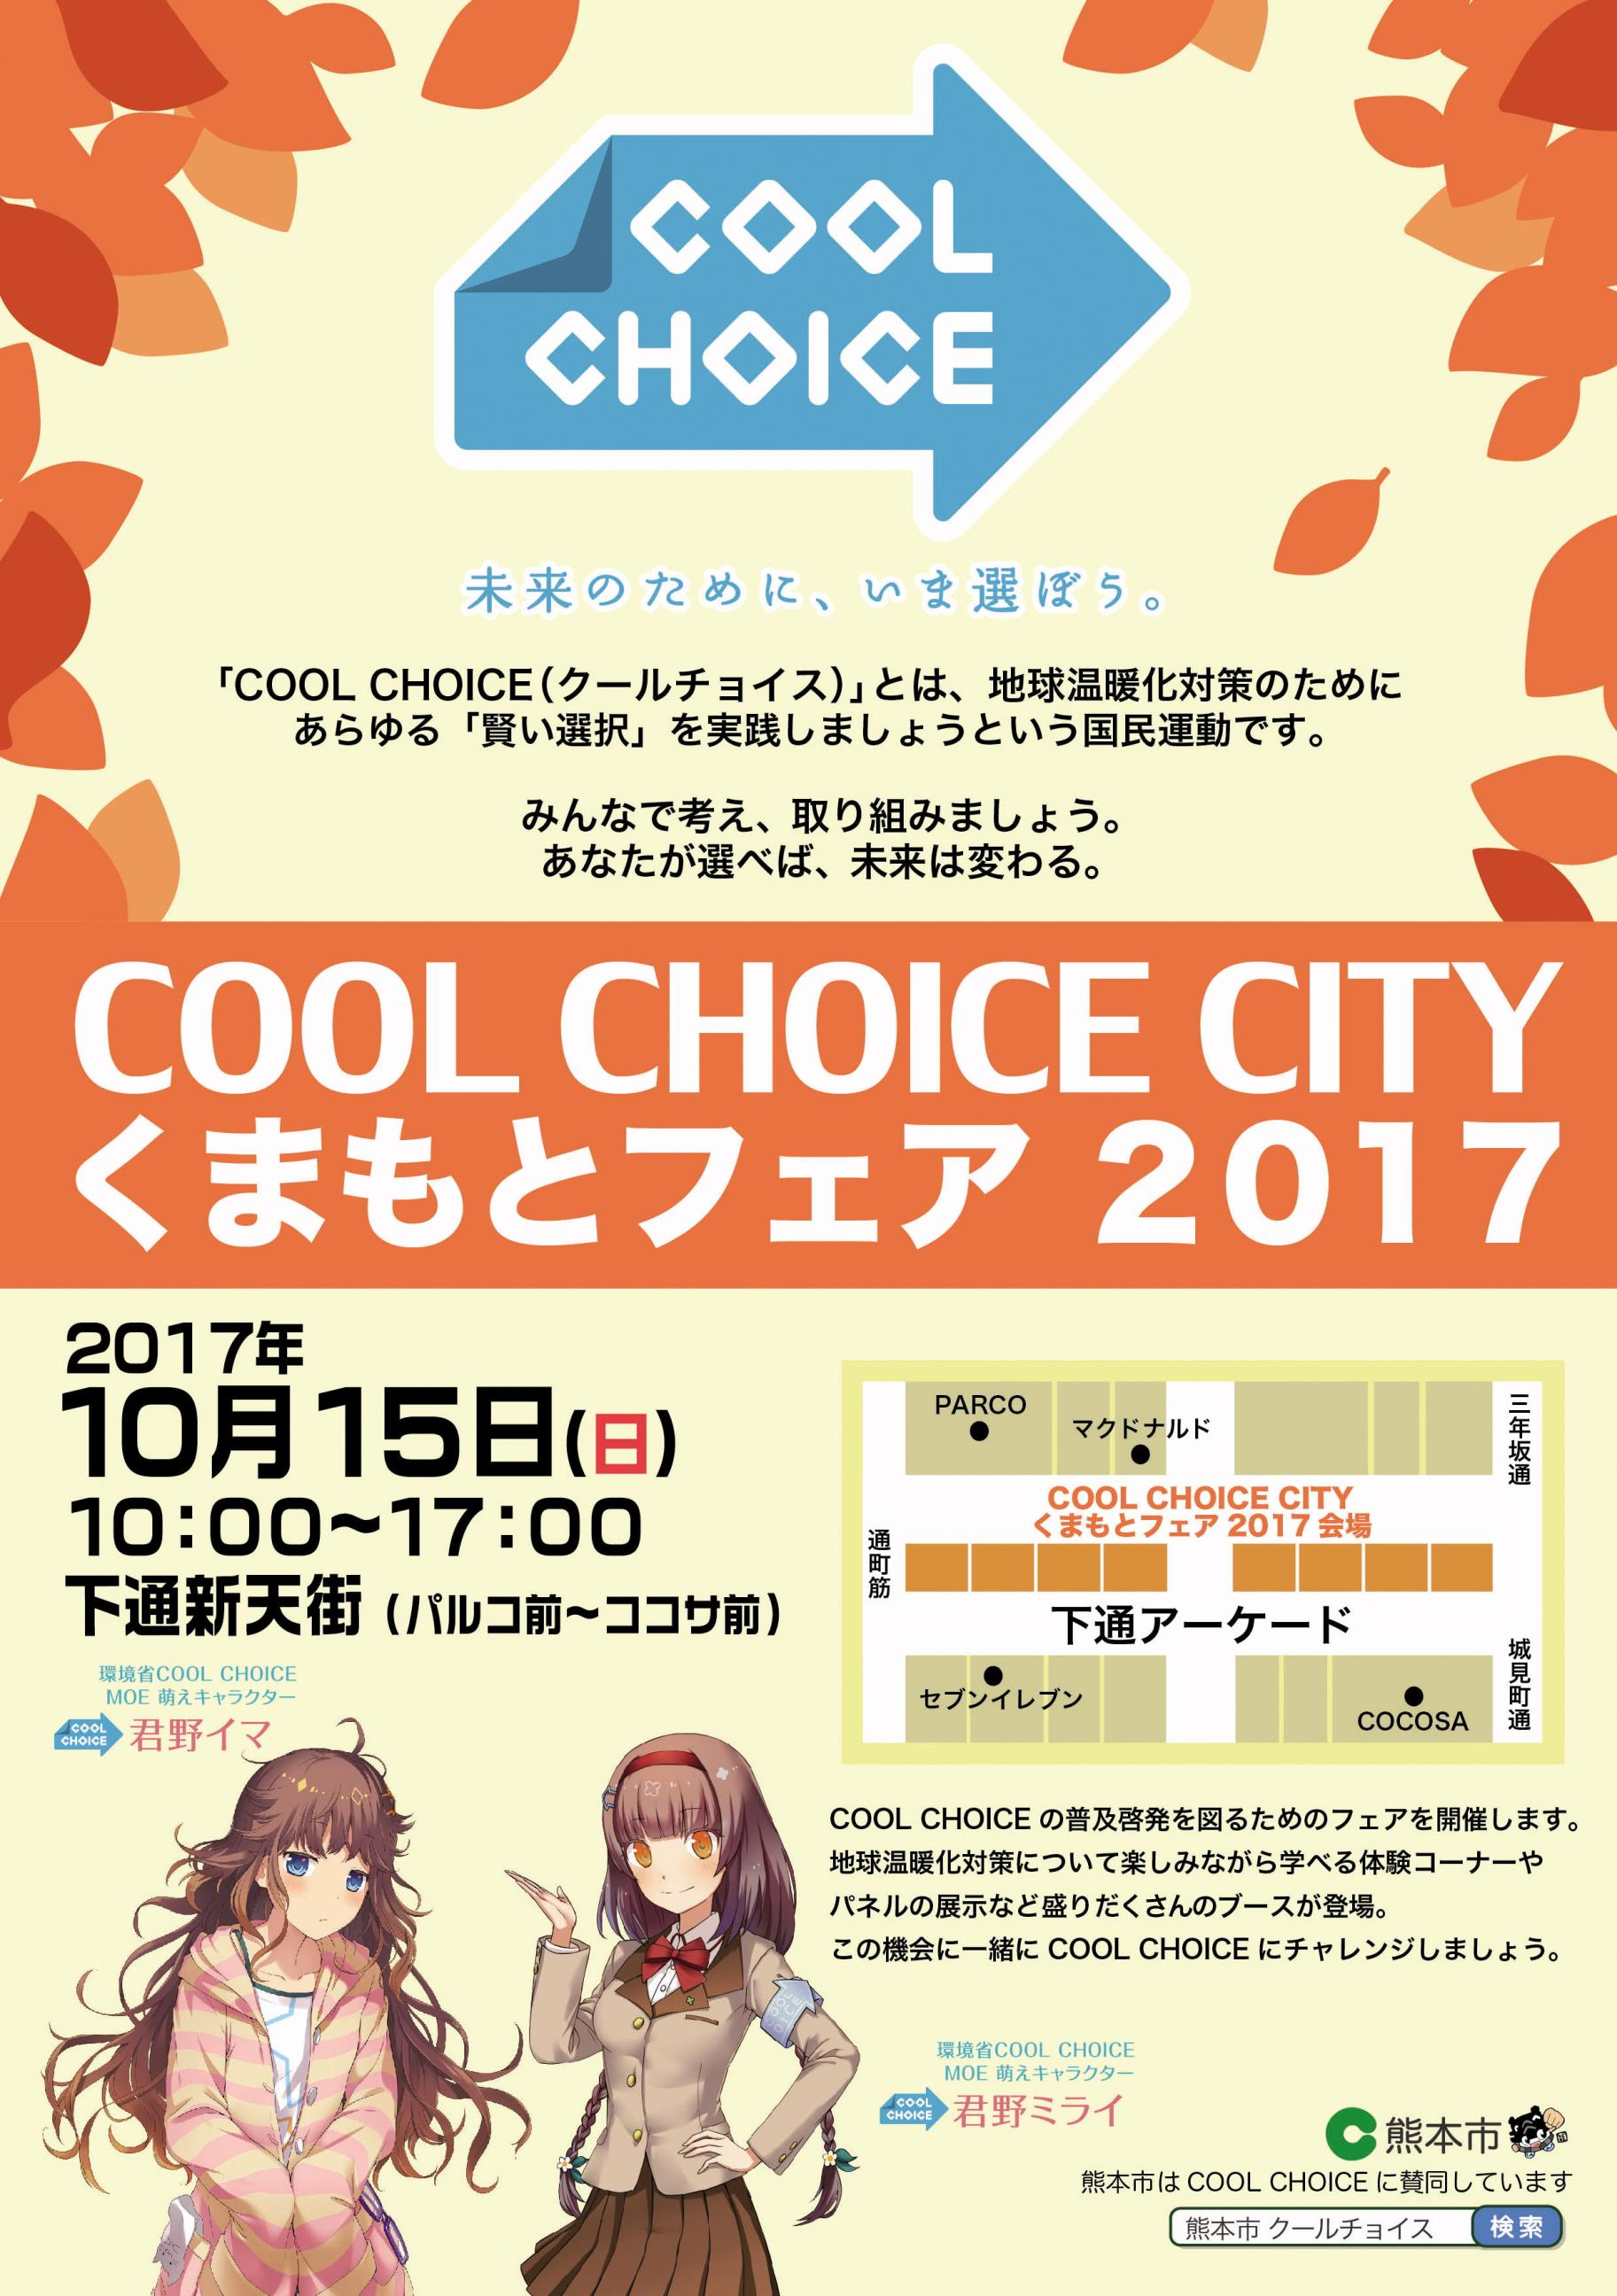 「COOL CHOICE CITY くまもとフェア 2017」案内チラシ